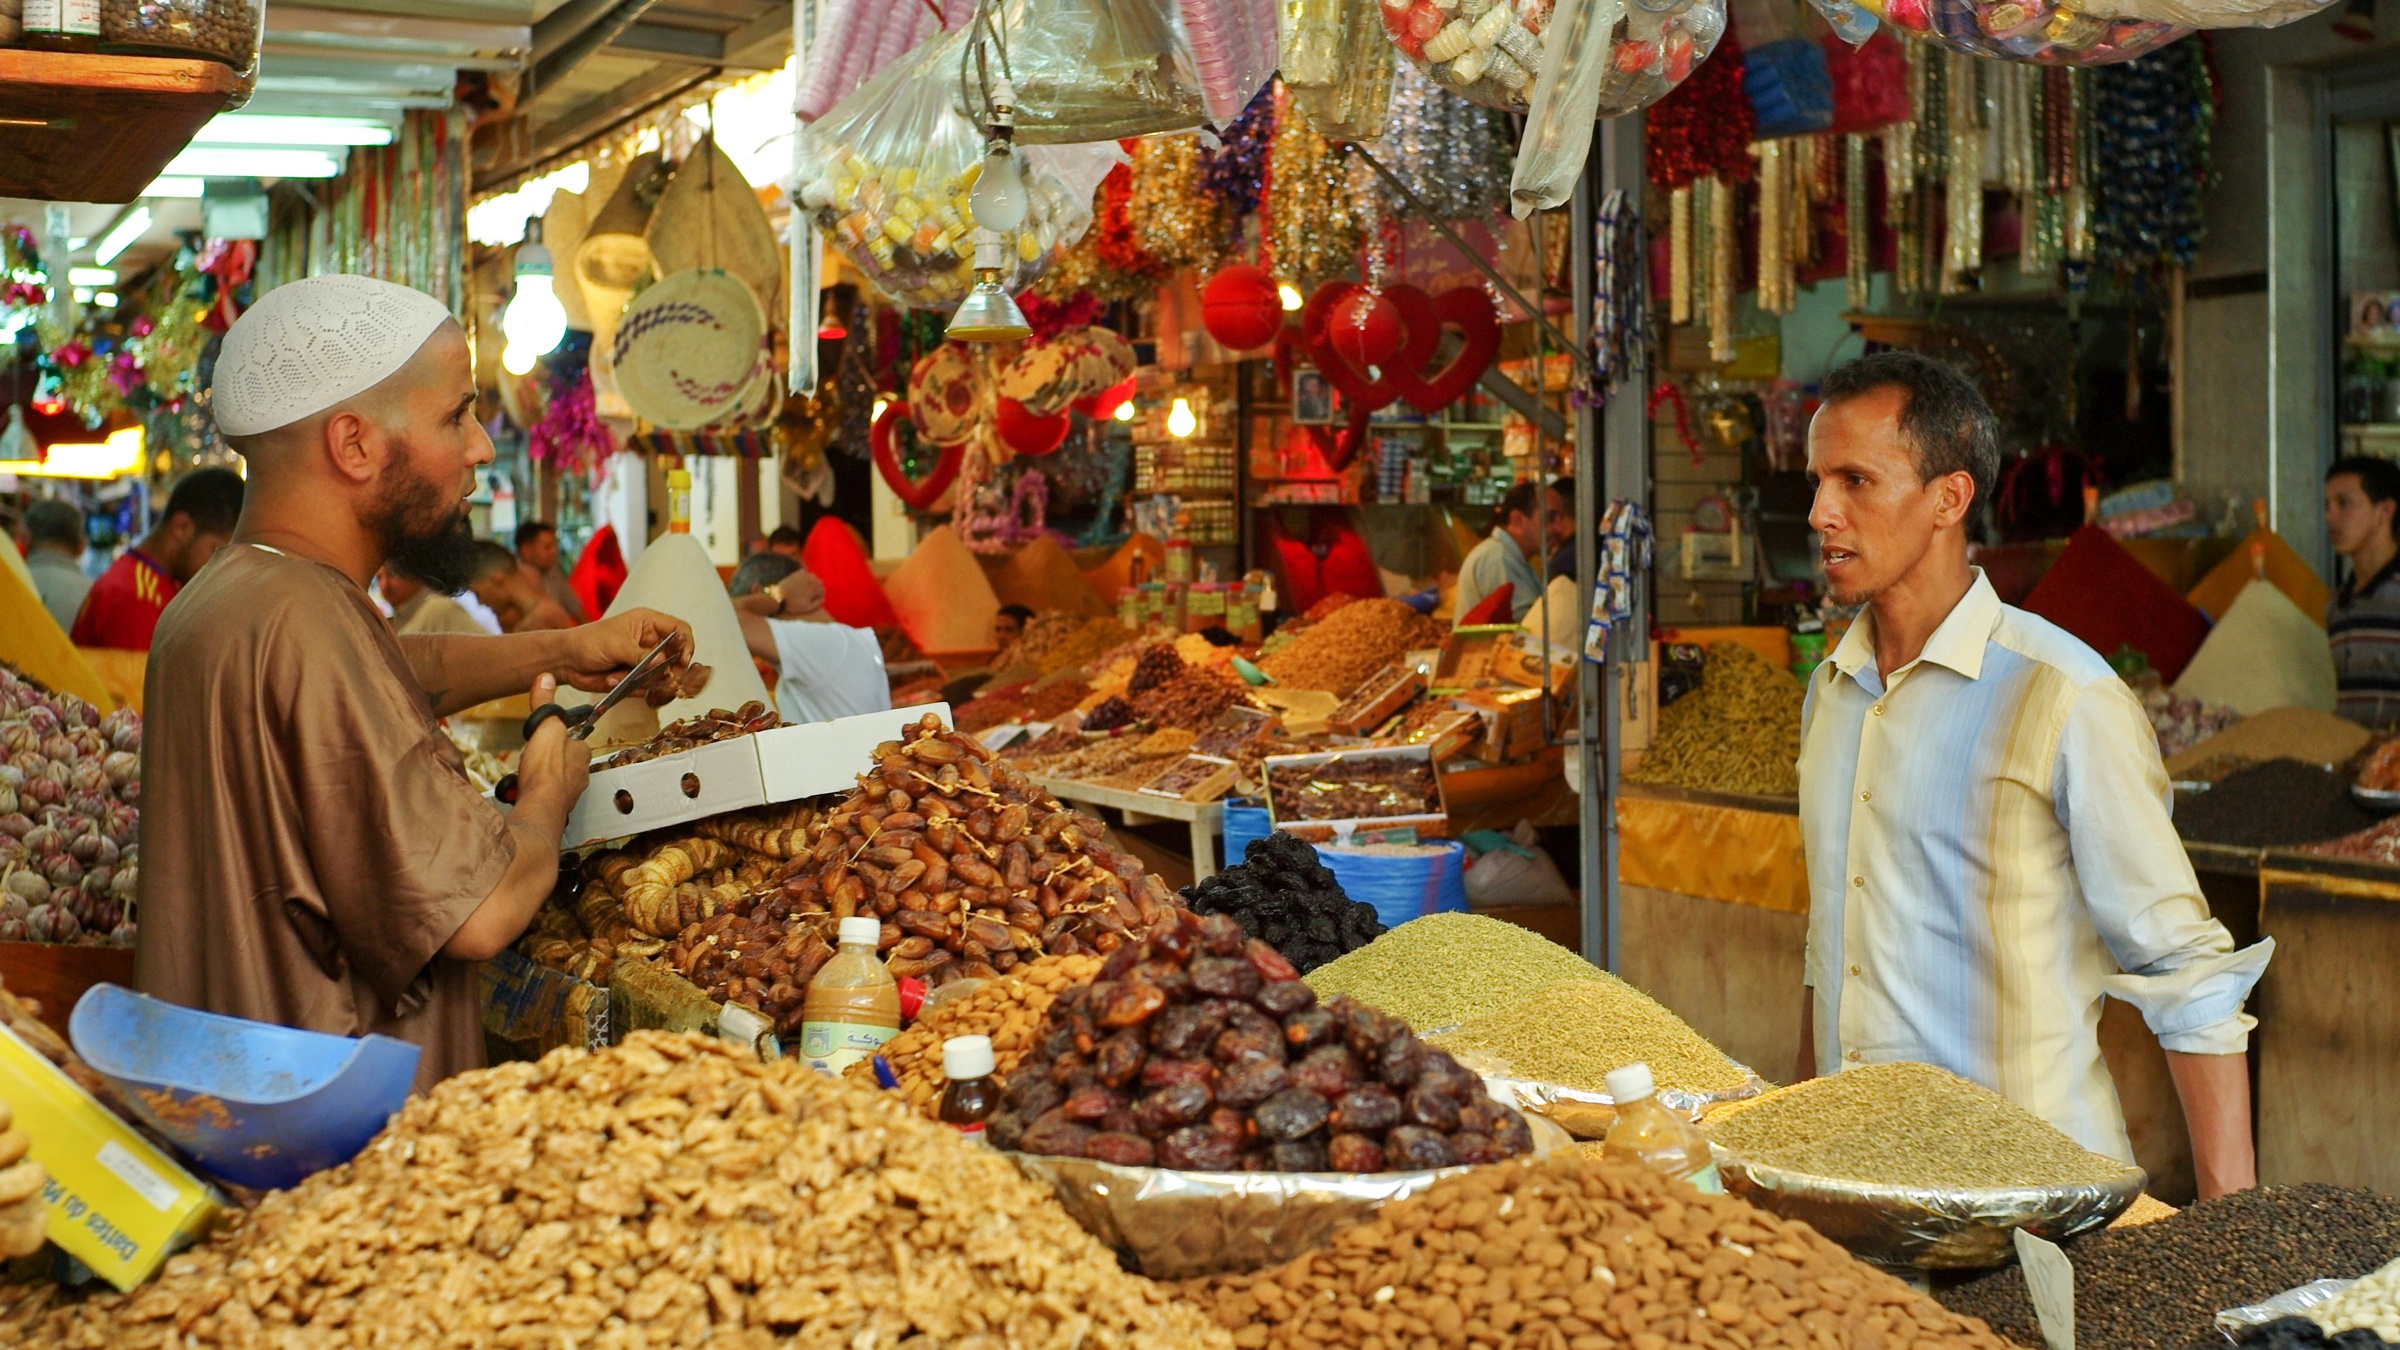 A man buys dates in a souk market in Casablanca in preparation for breaking the Ramadan fast during the first day of the holy fasting month of Ramadan in Casablanca, Morocco, Saturday, July 21, 2012.  (AP Photo/Abdeljalil Bounhar)